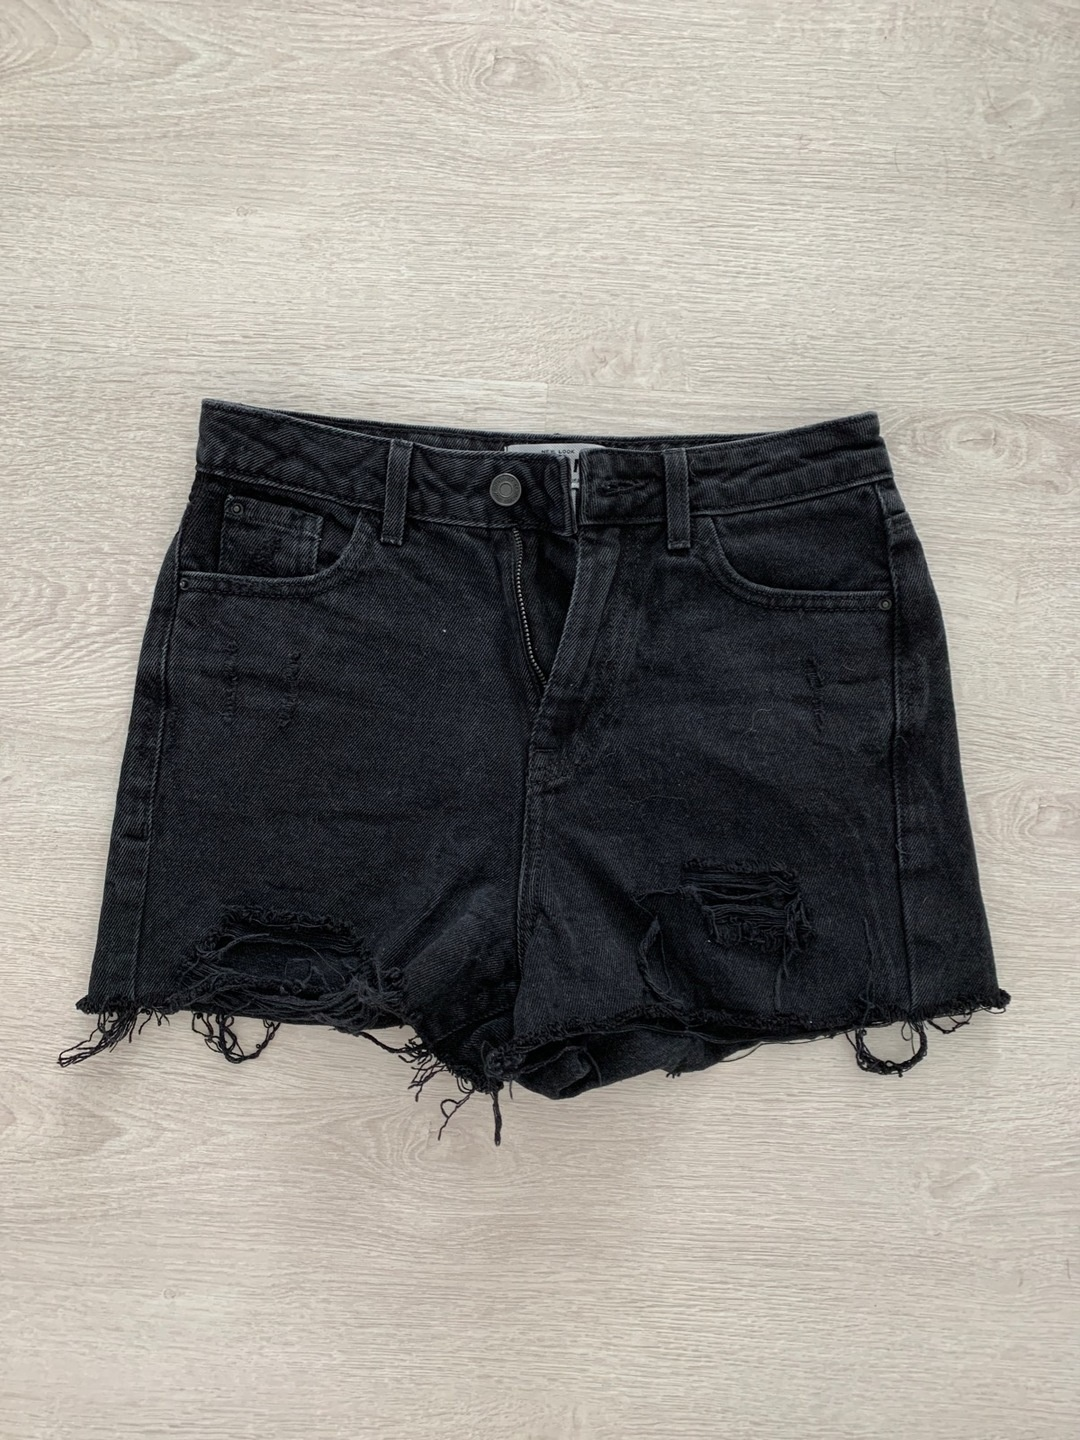 Women's shorts - NEW LOOK photo 1